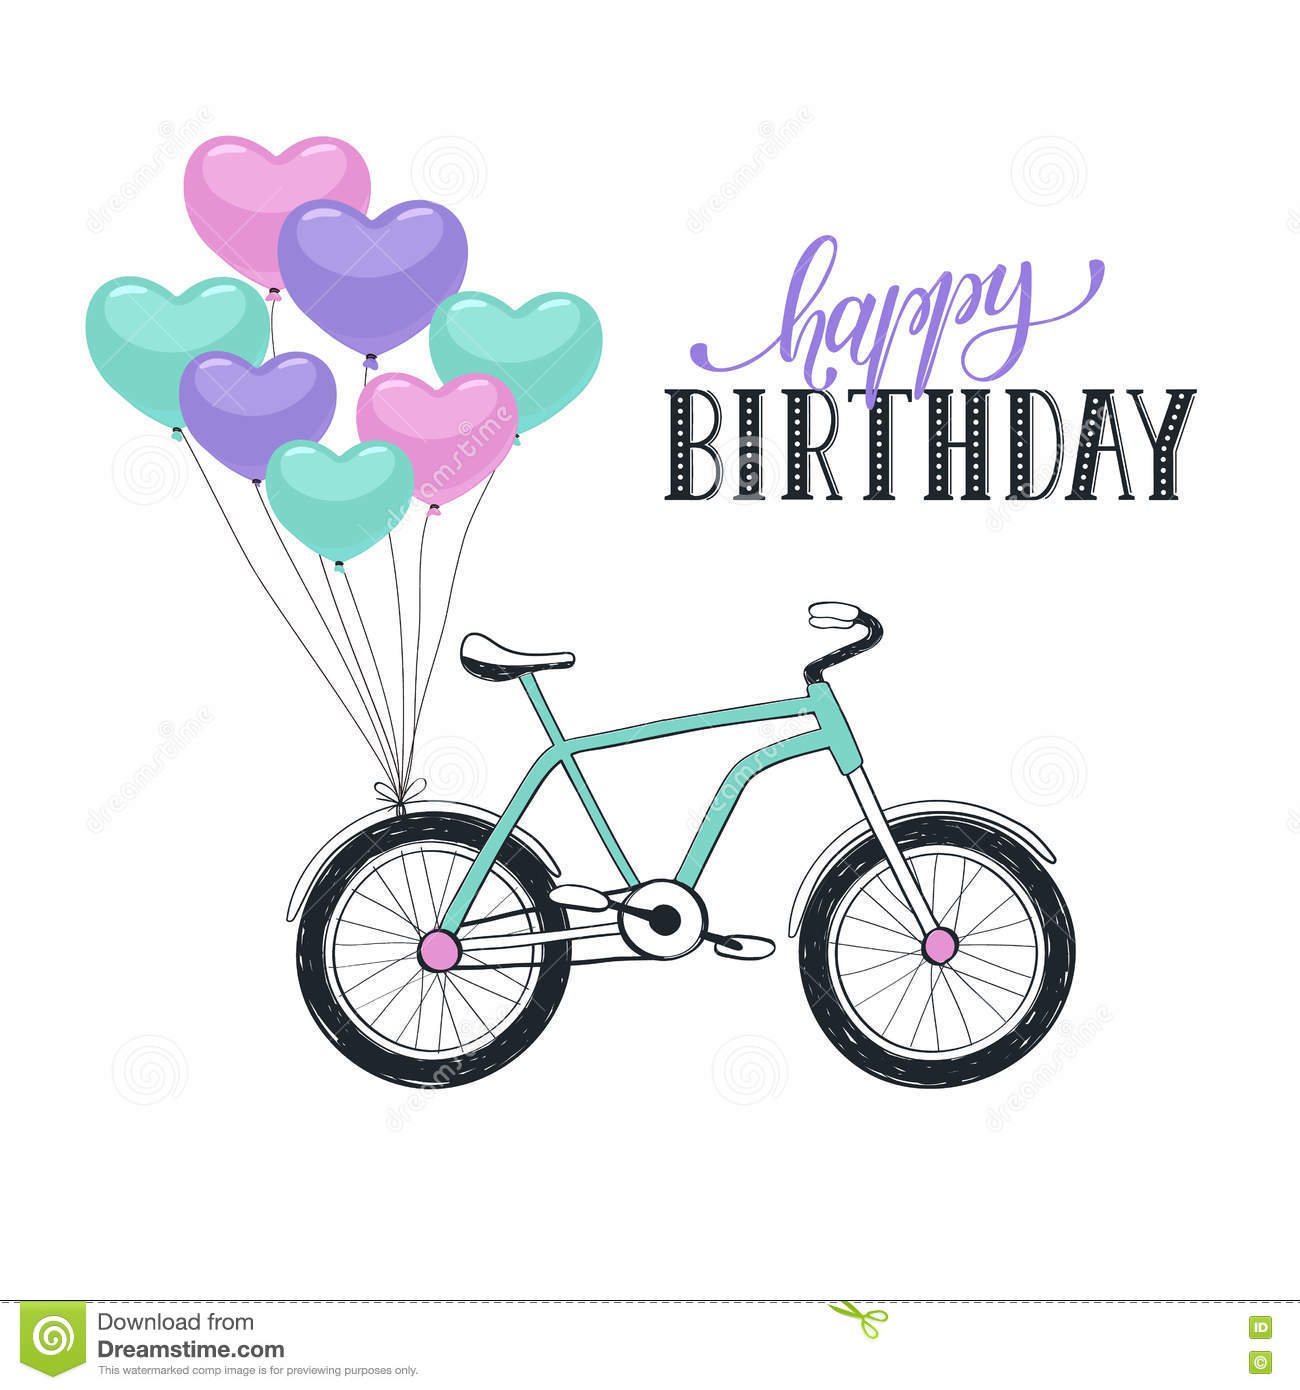 birthday card bicycle rider ; cartoon-bike-balloons-happy-birthday-greeting-card-isolated-white-background-hand-drawn-bycicle-colorful-heart-shape-70346179